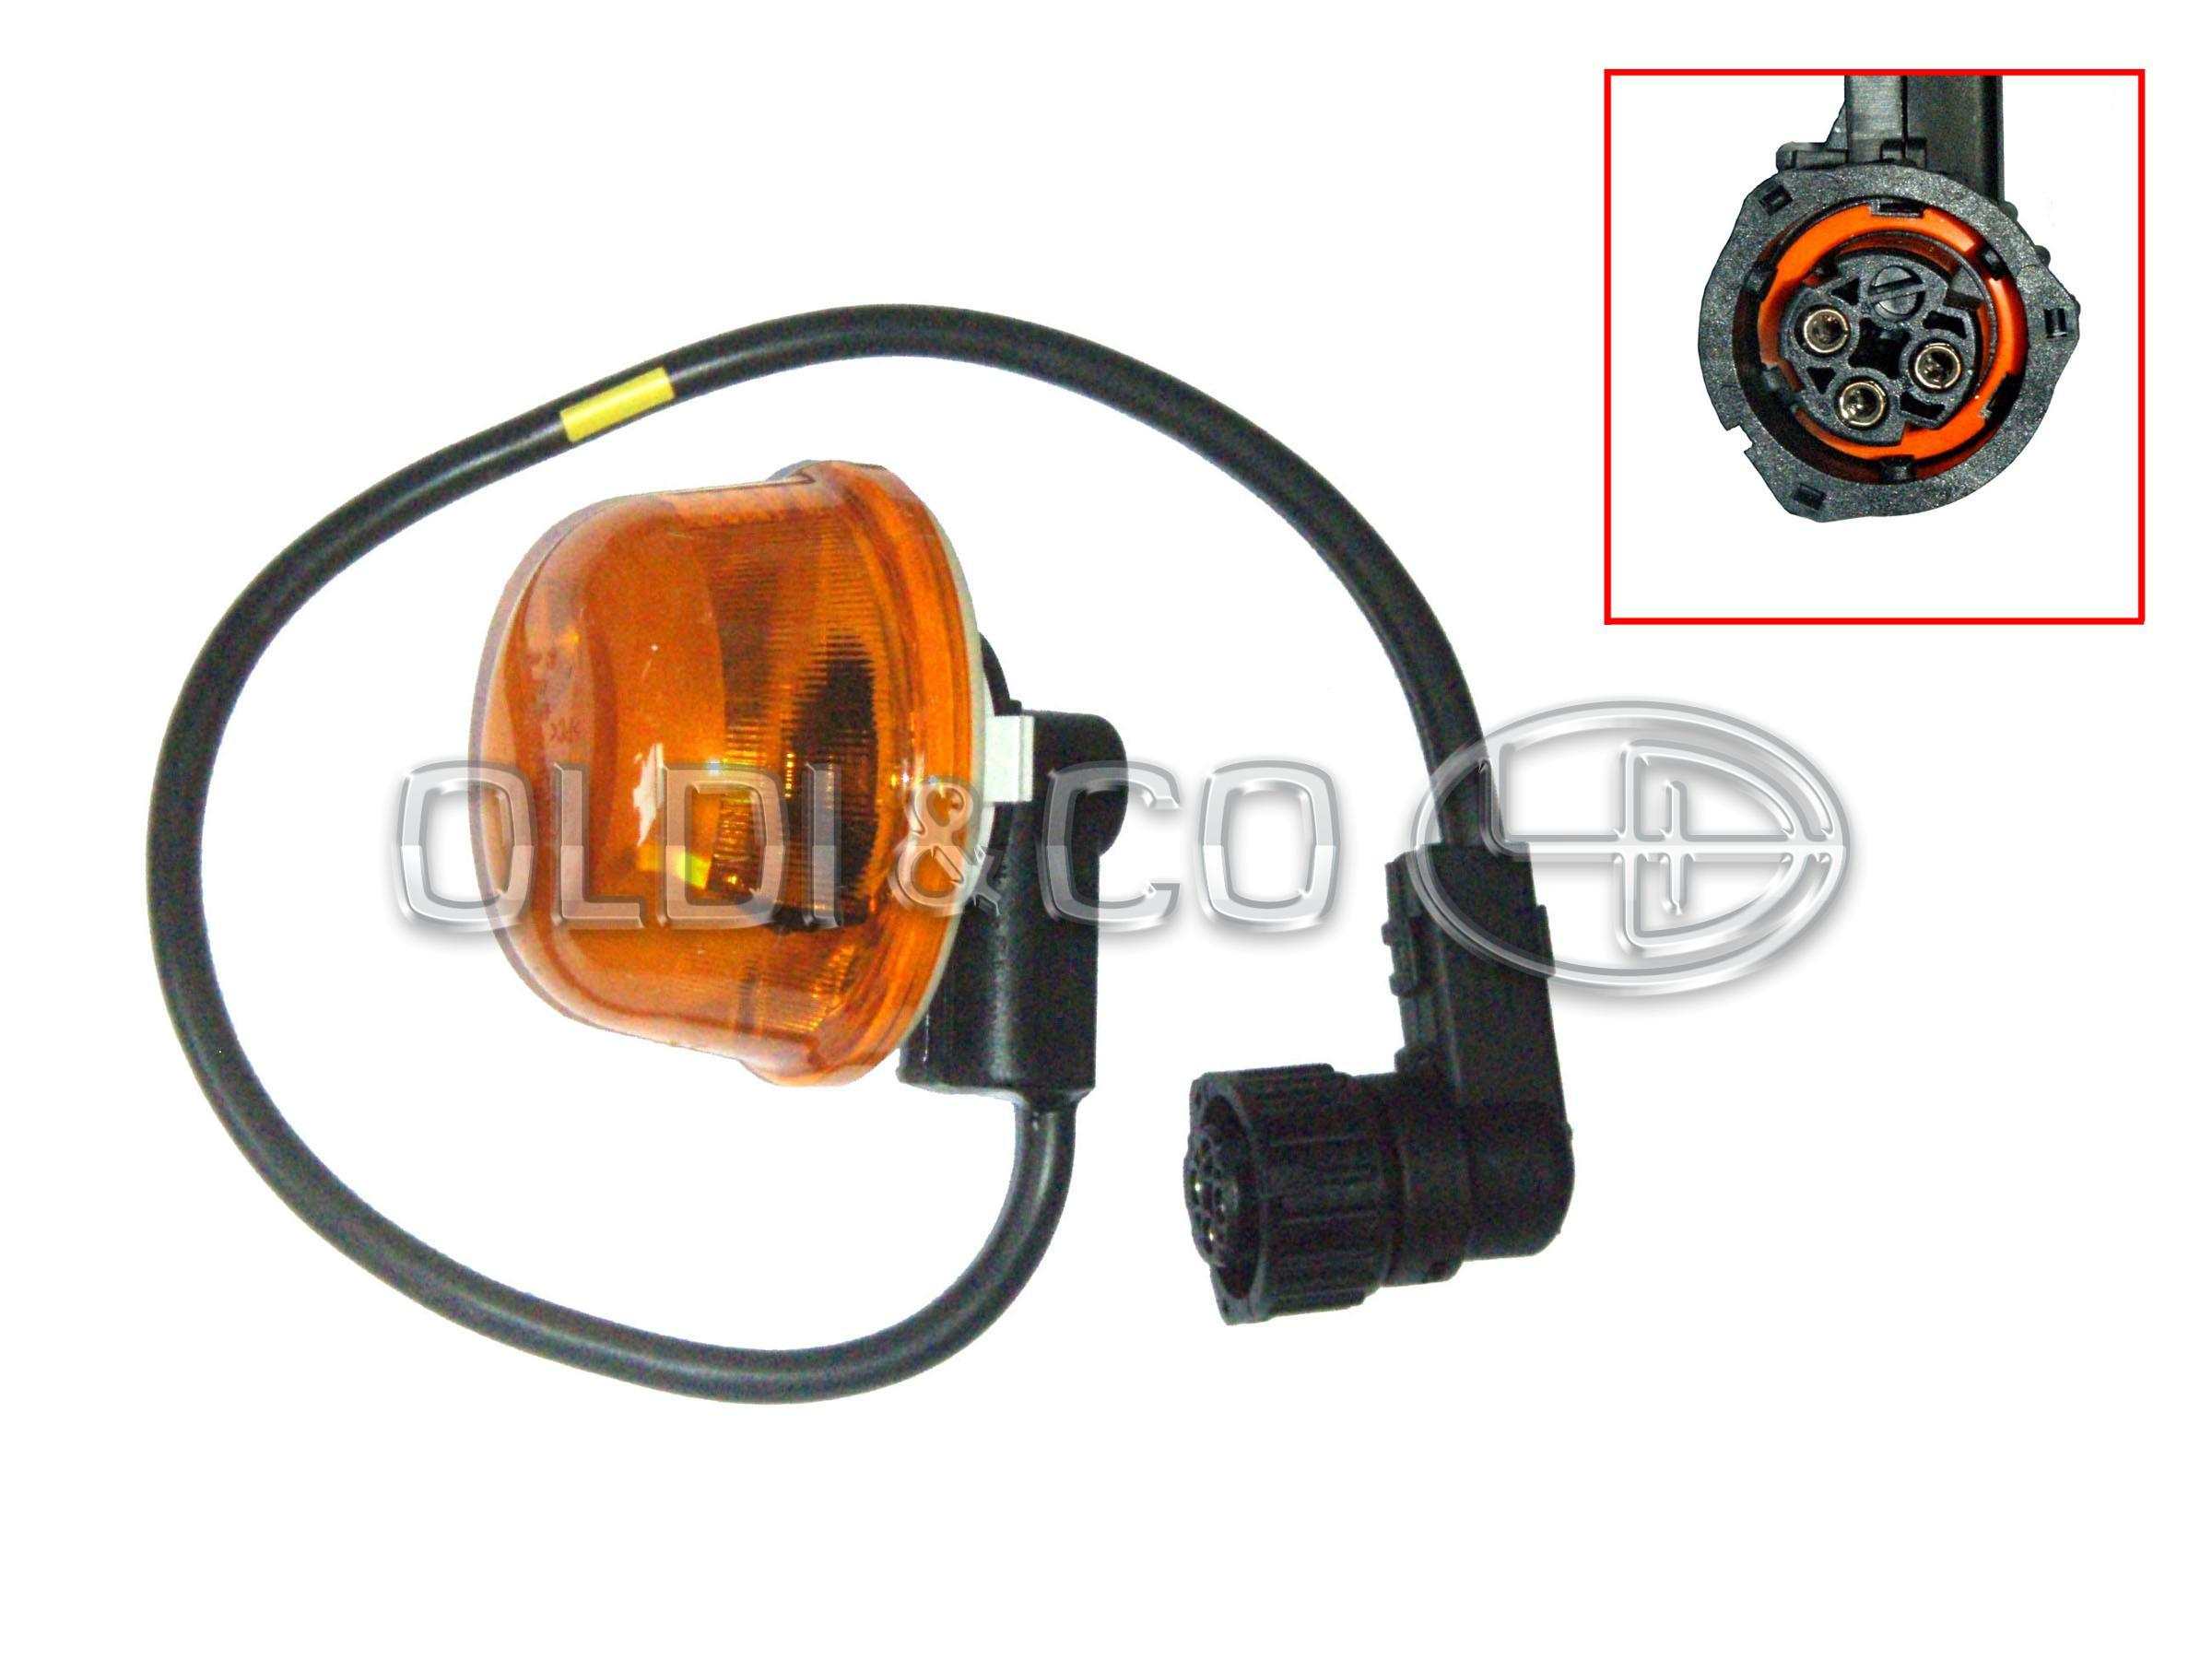 13 018 15608 - Optics and bulbs - Turn signal lamp - Auto optika un